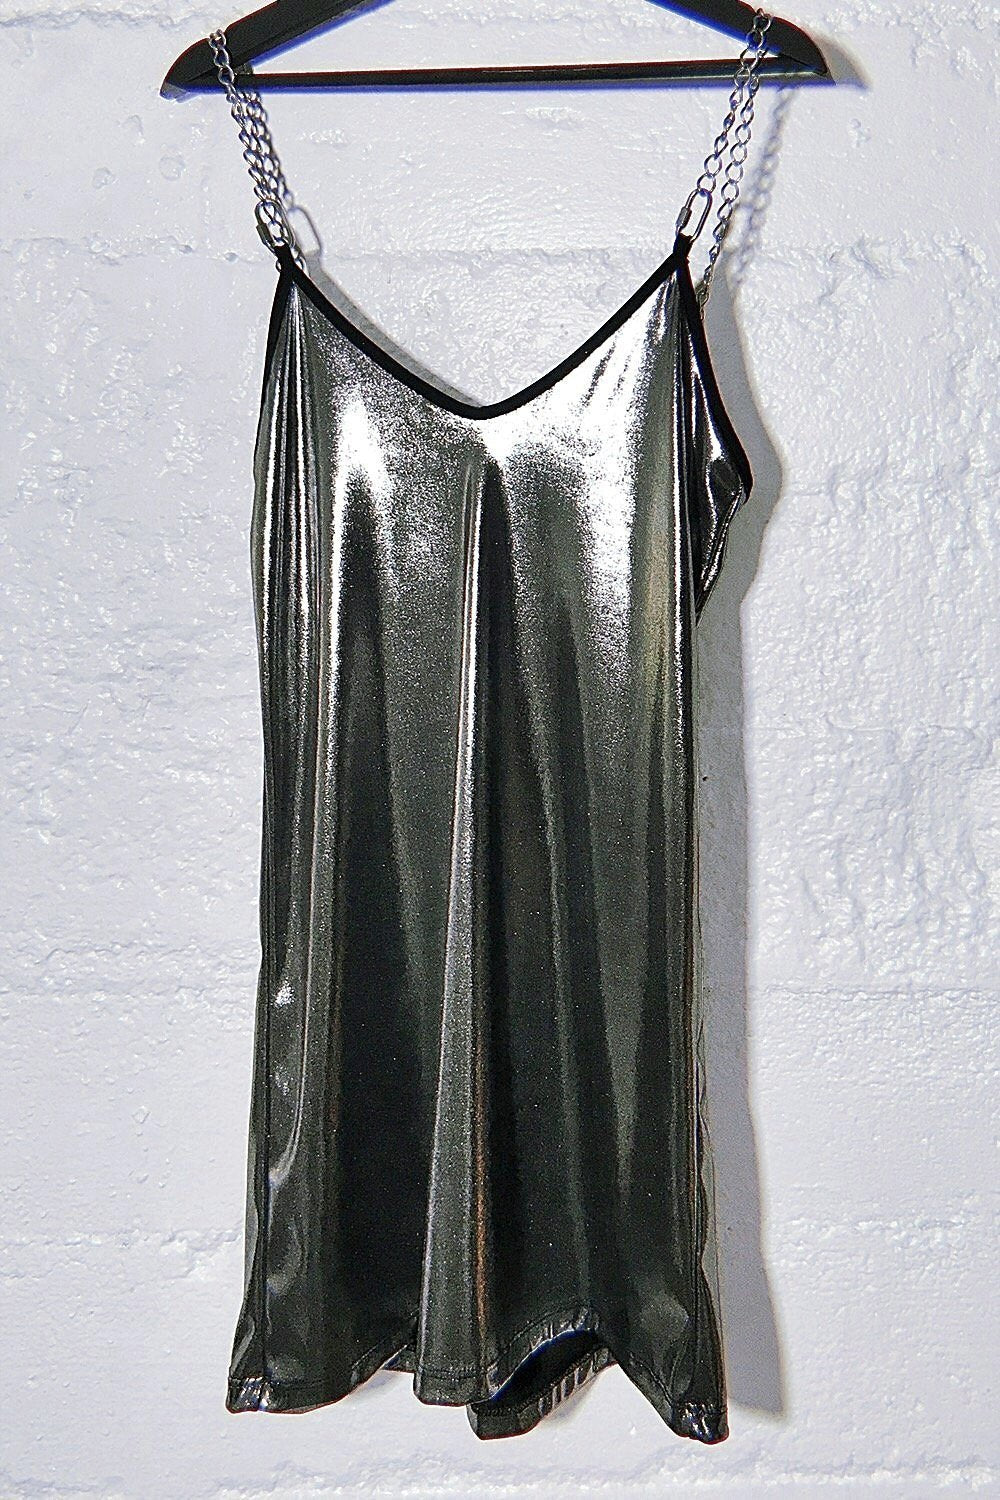 The Heavy Metal Chain Dress in Liquid Lamé Silver